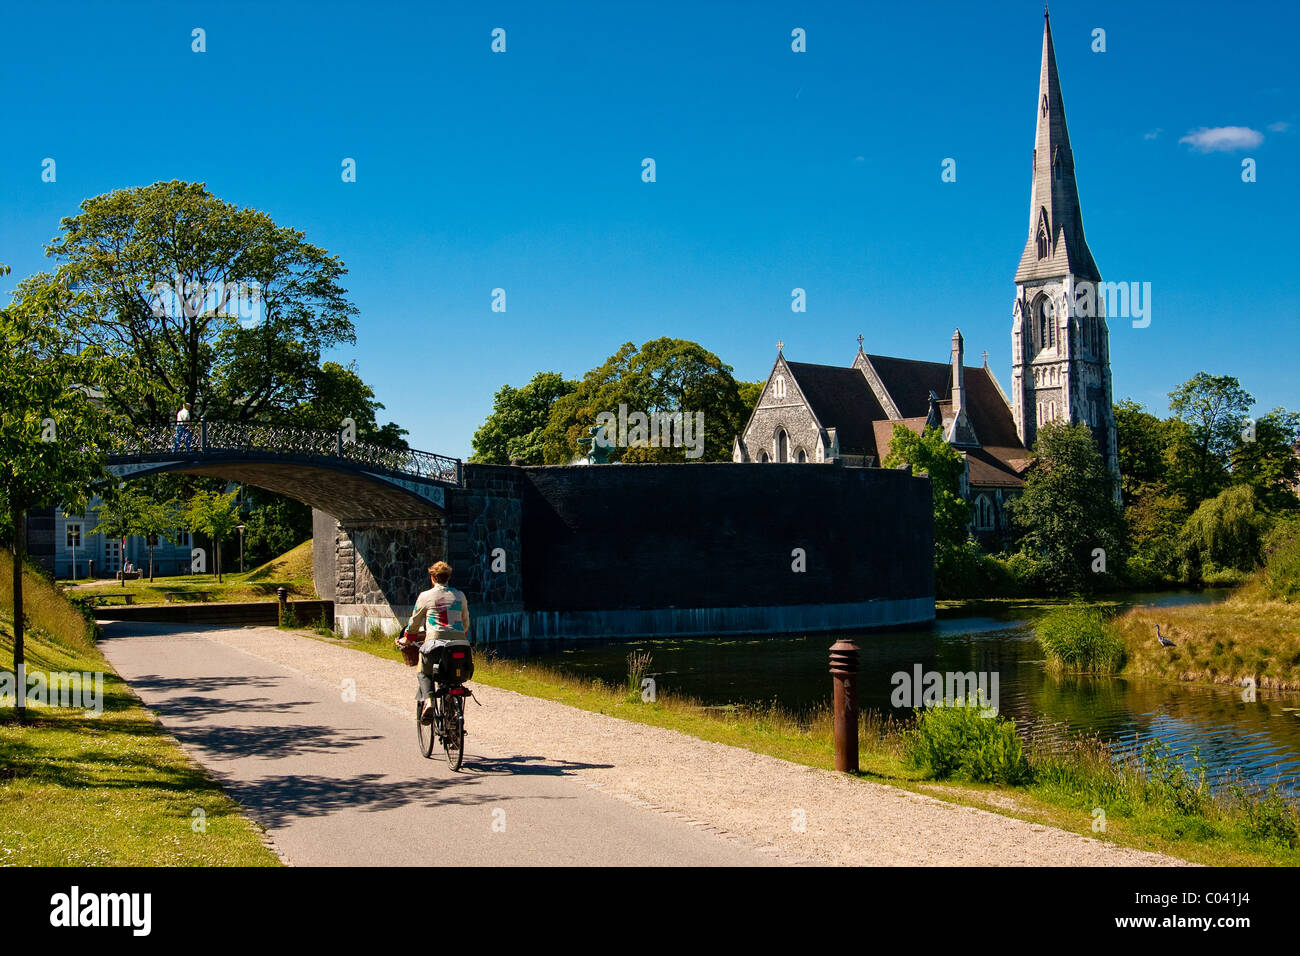 Bicyclist riding on a path near Saint Albans Anglican Church in Copenhagen, Denmark. - Stock Image